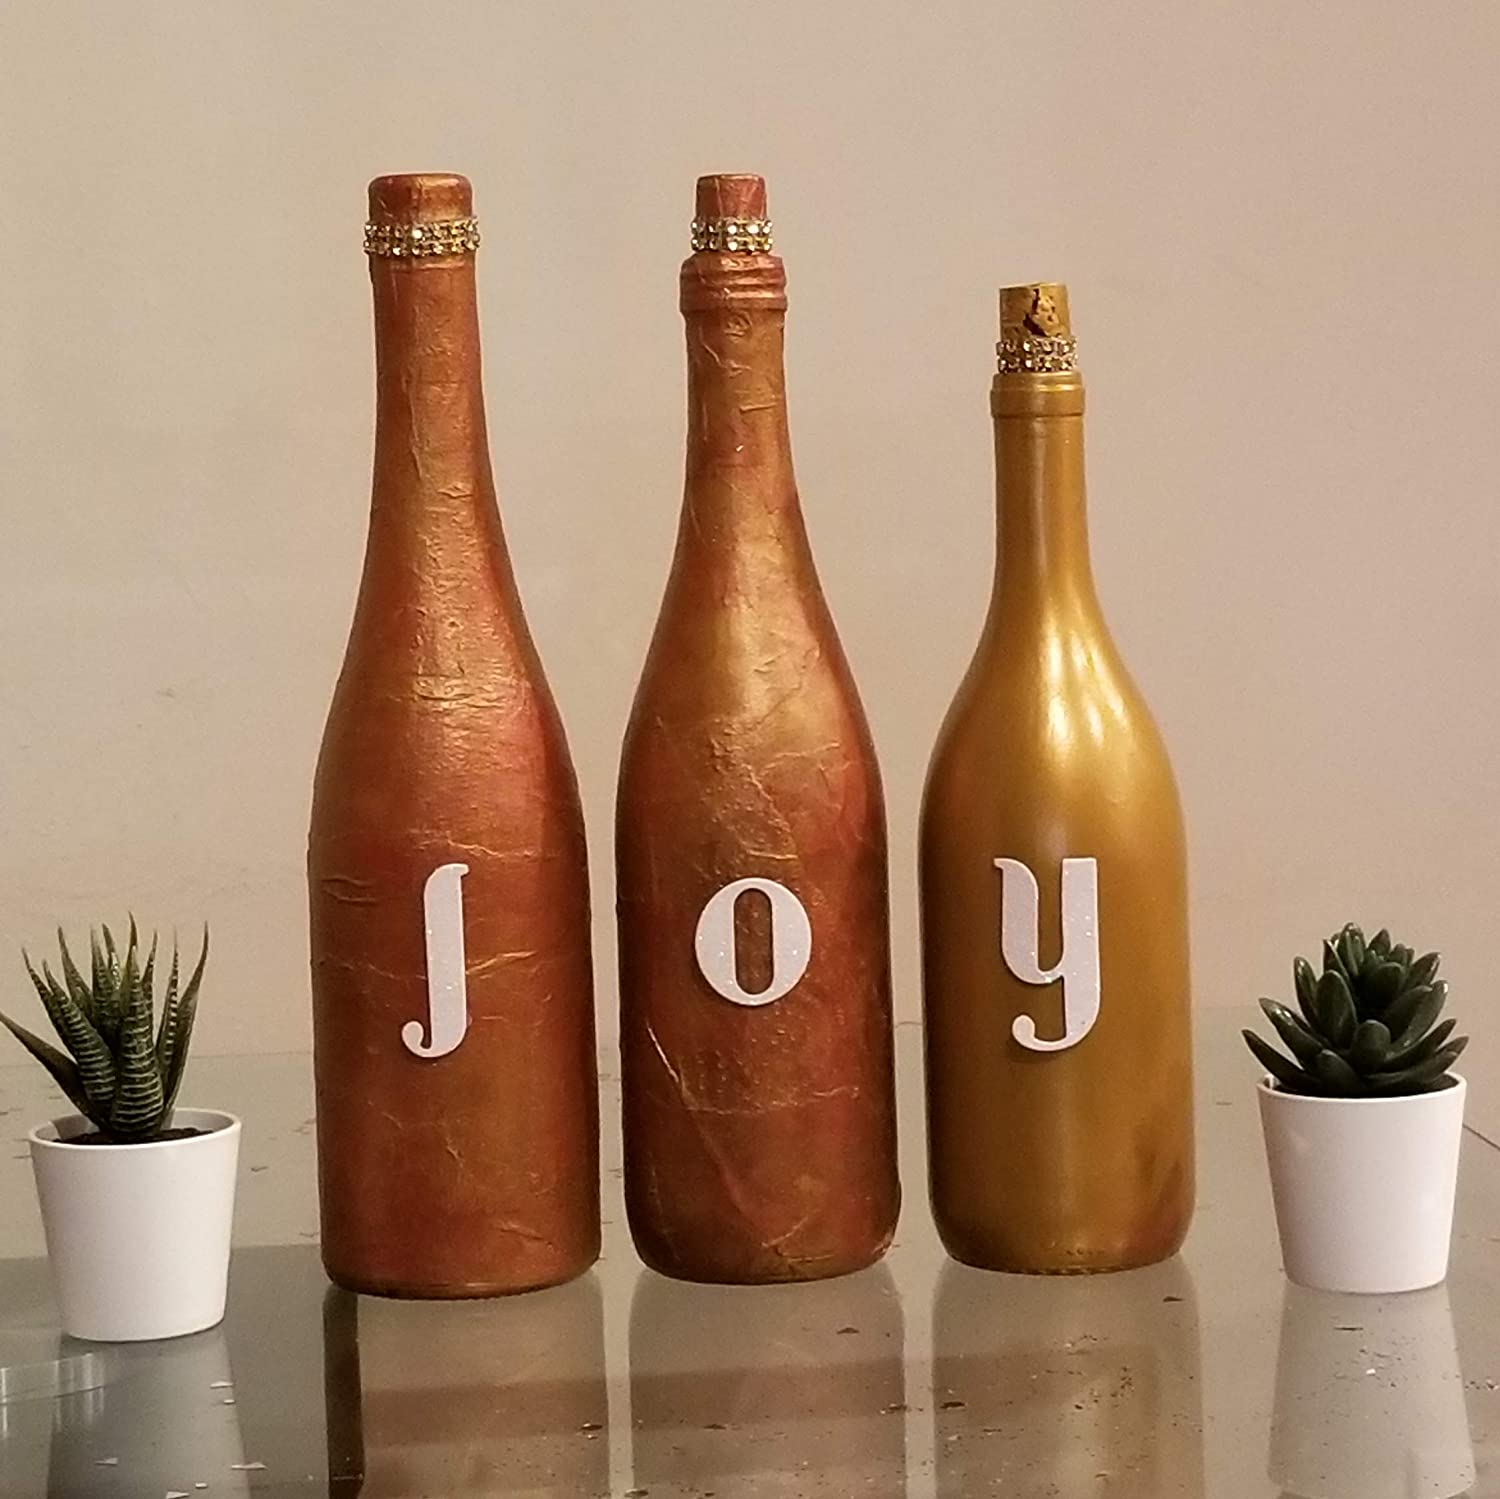 3 Hand Painted Bottles Discount mail order - JOY and golden Painting ochre Cash special price Home